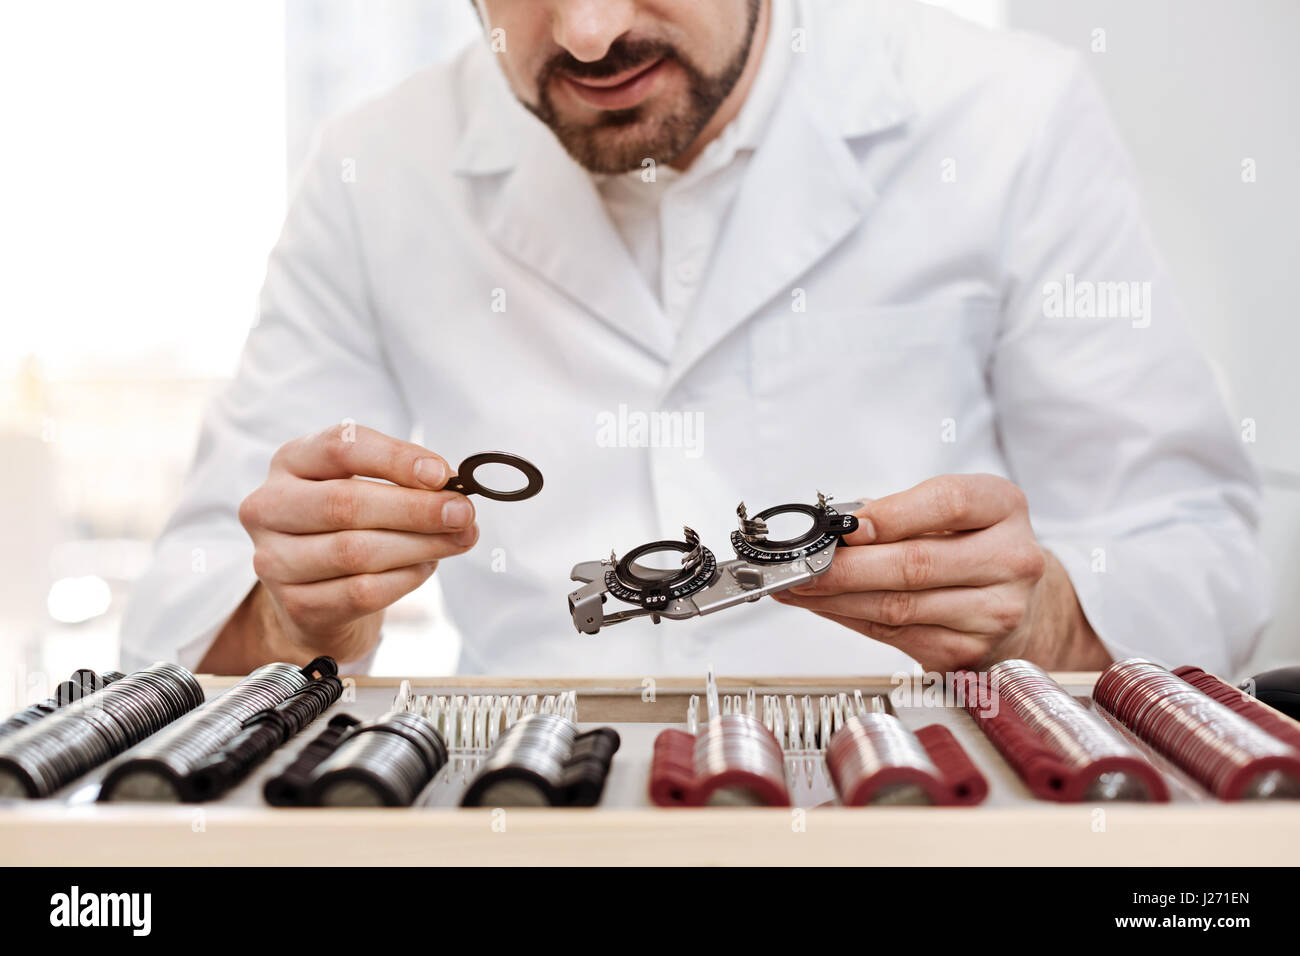 Charming scrupulous ophthalmologist picking right lenses - Stock Image